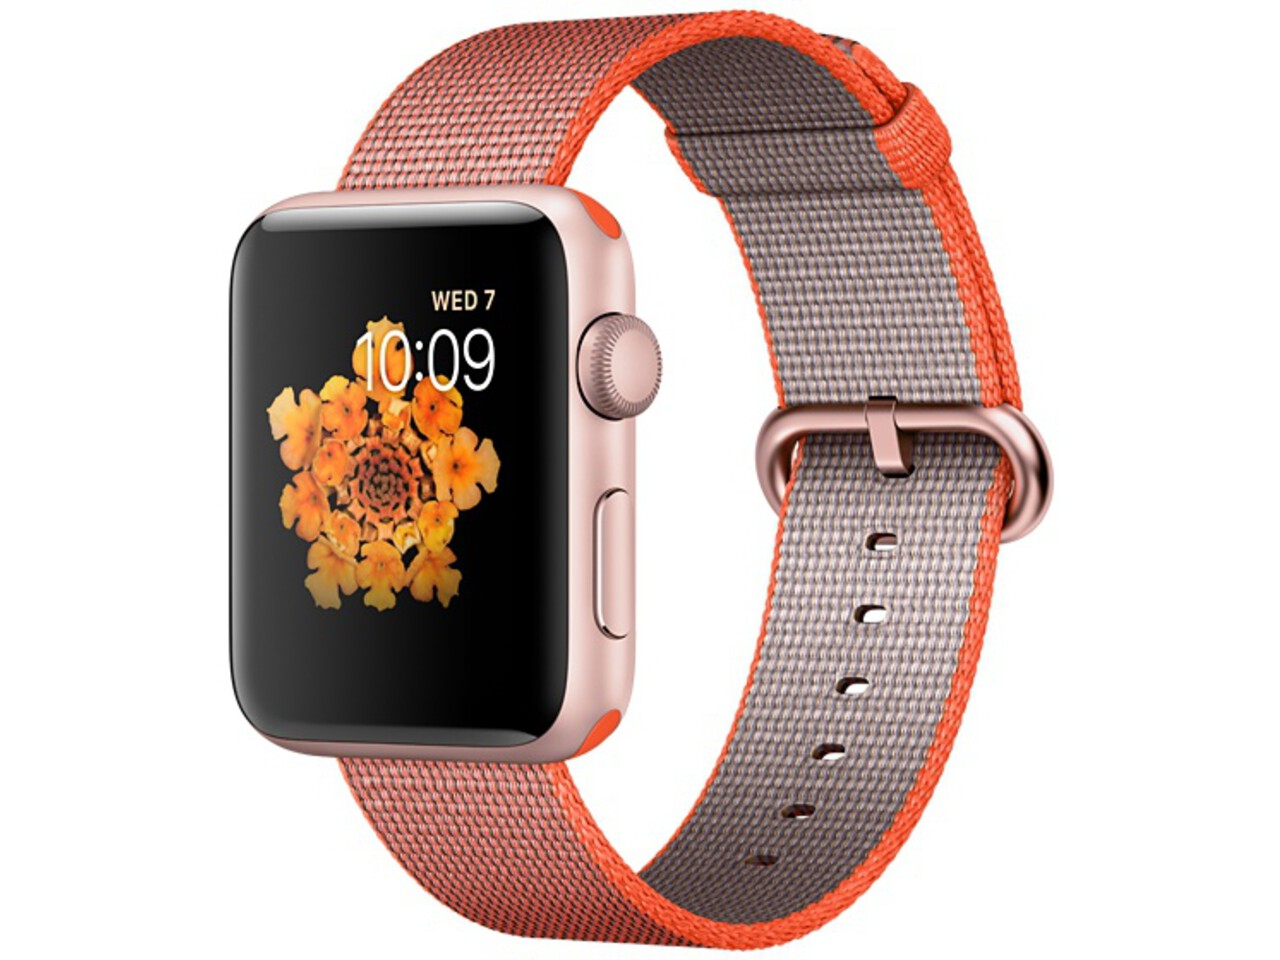 apple watch series 2 42mm rose gold aluminum space orangeanthracite woven nylon band